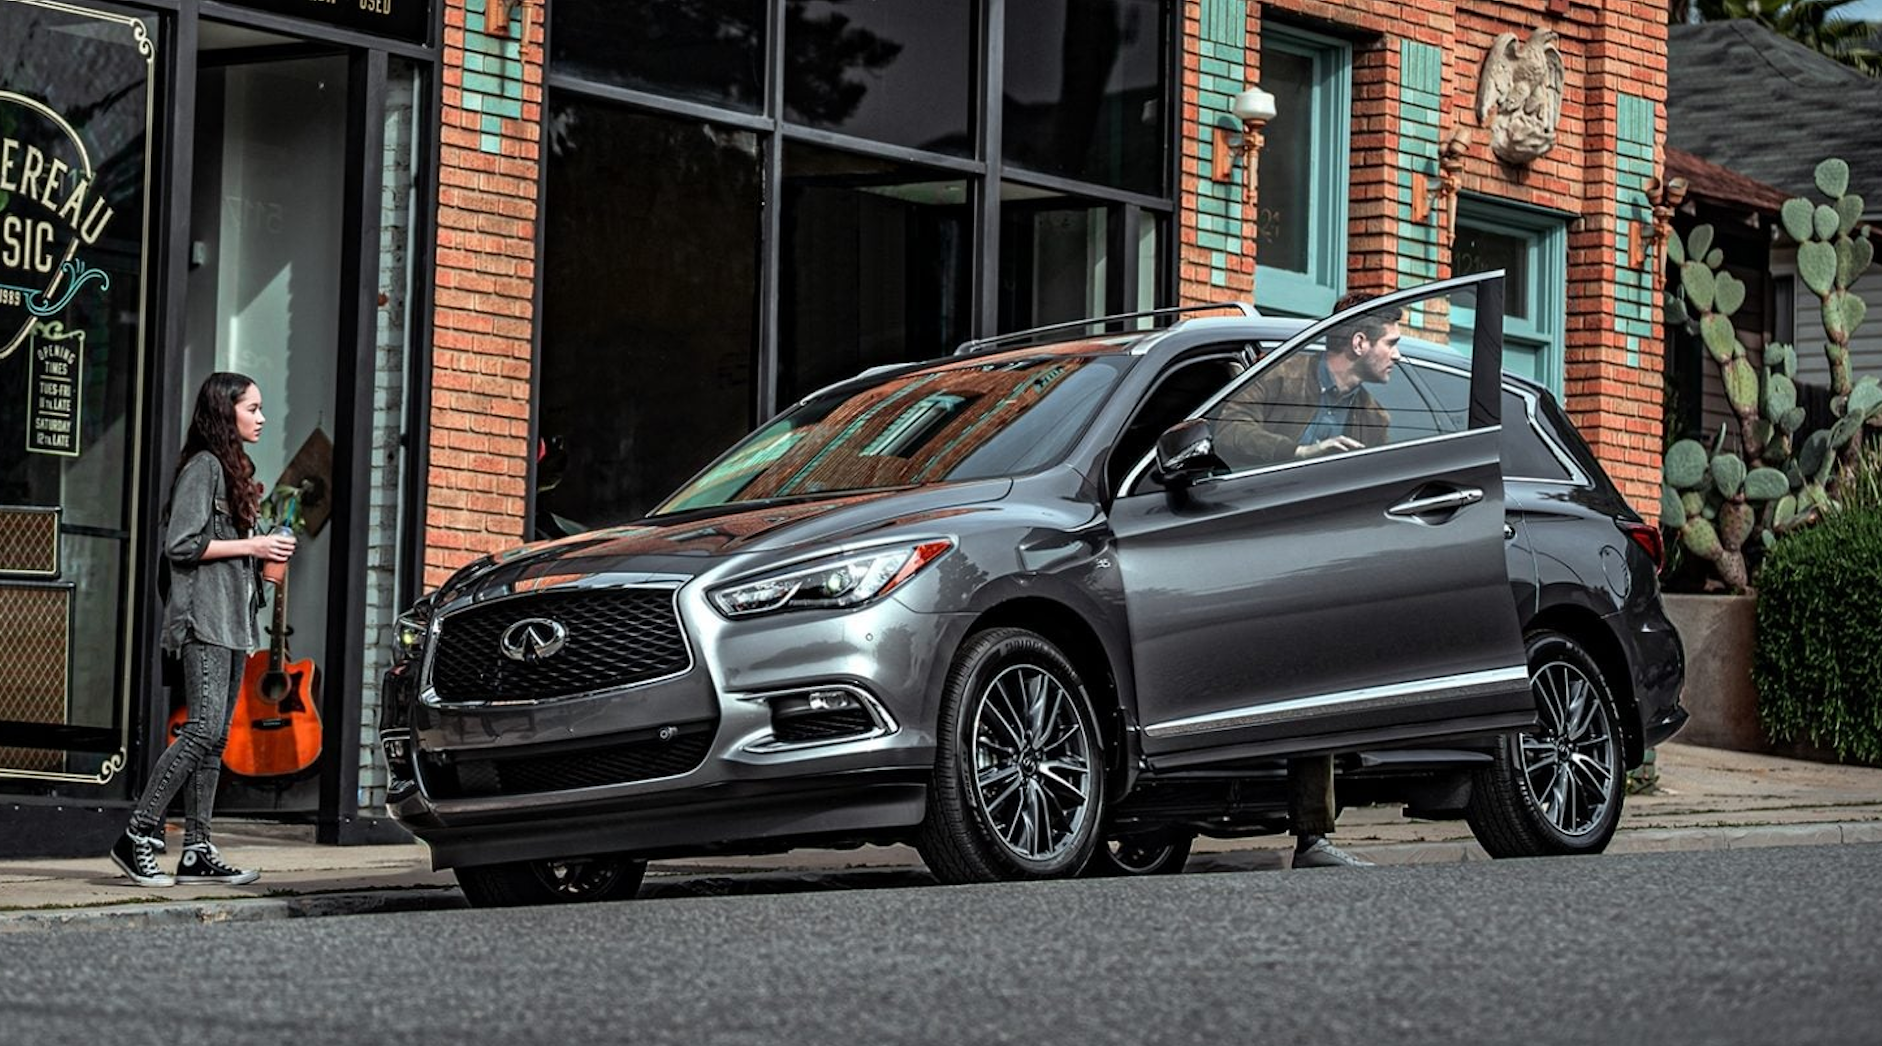 2020 INFINITI QX60 for sale in Mobile, AL